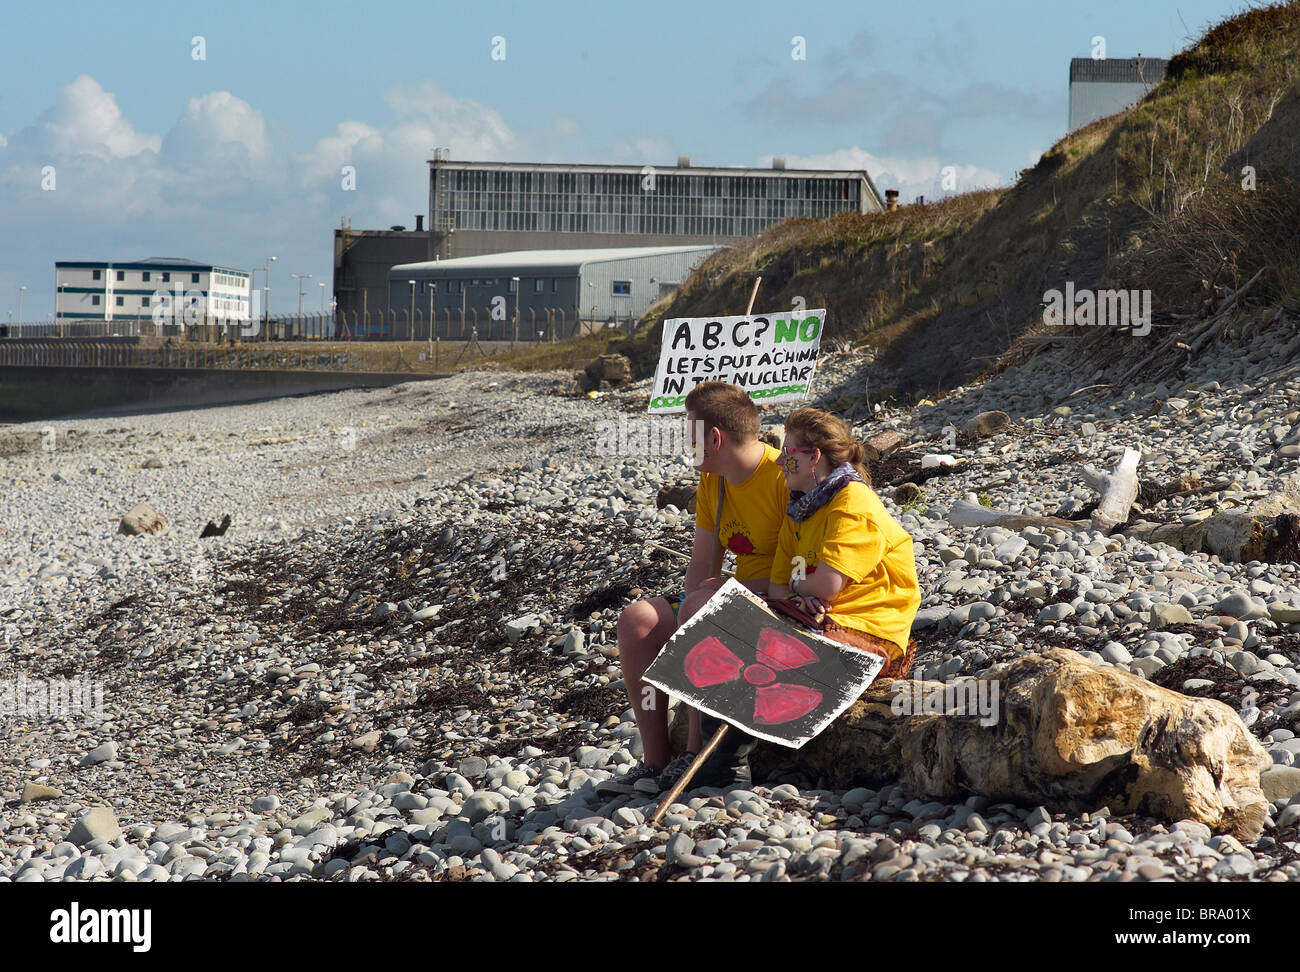 Demonstration on the beach at Hinkley Point nuclear power station against plans for a third power station Sept 2010 - Stock Image